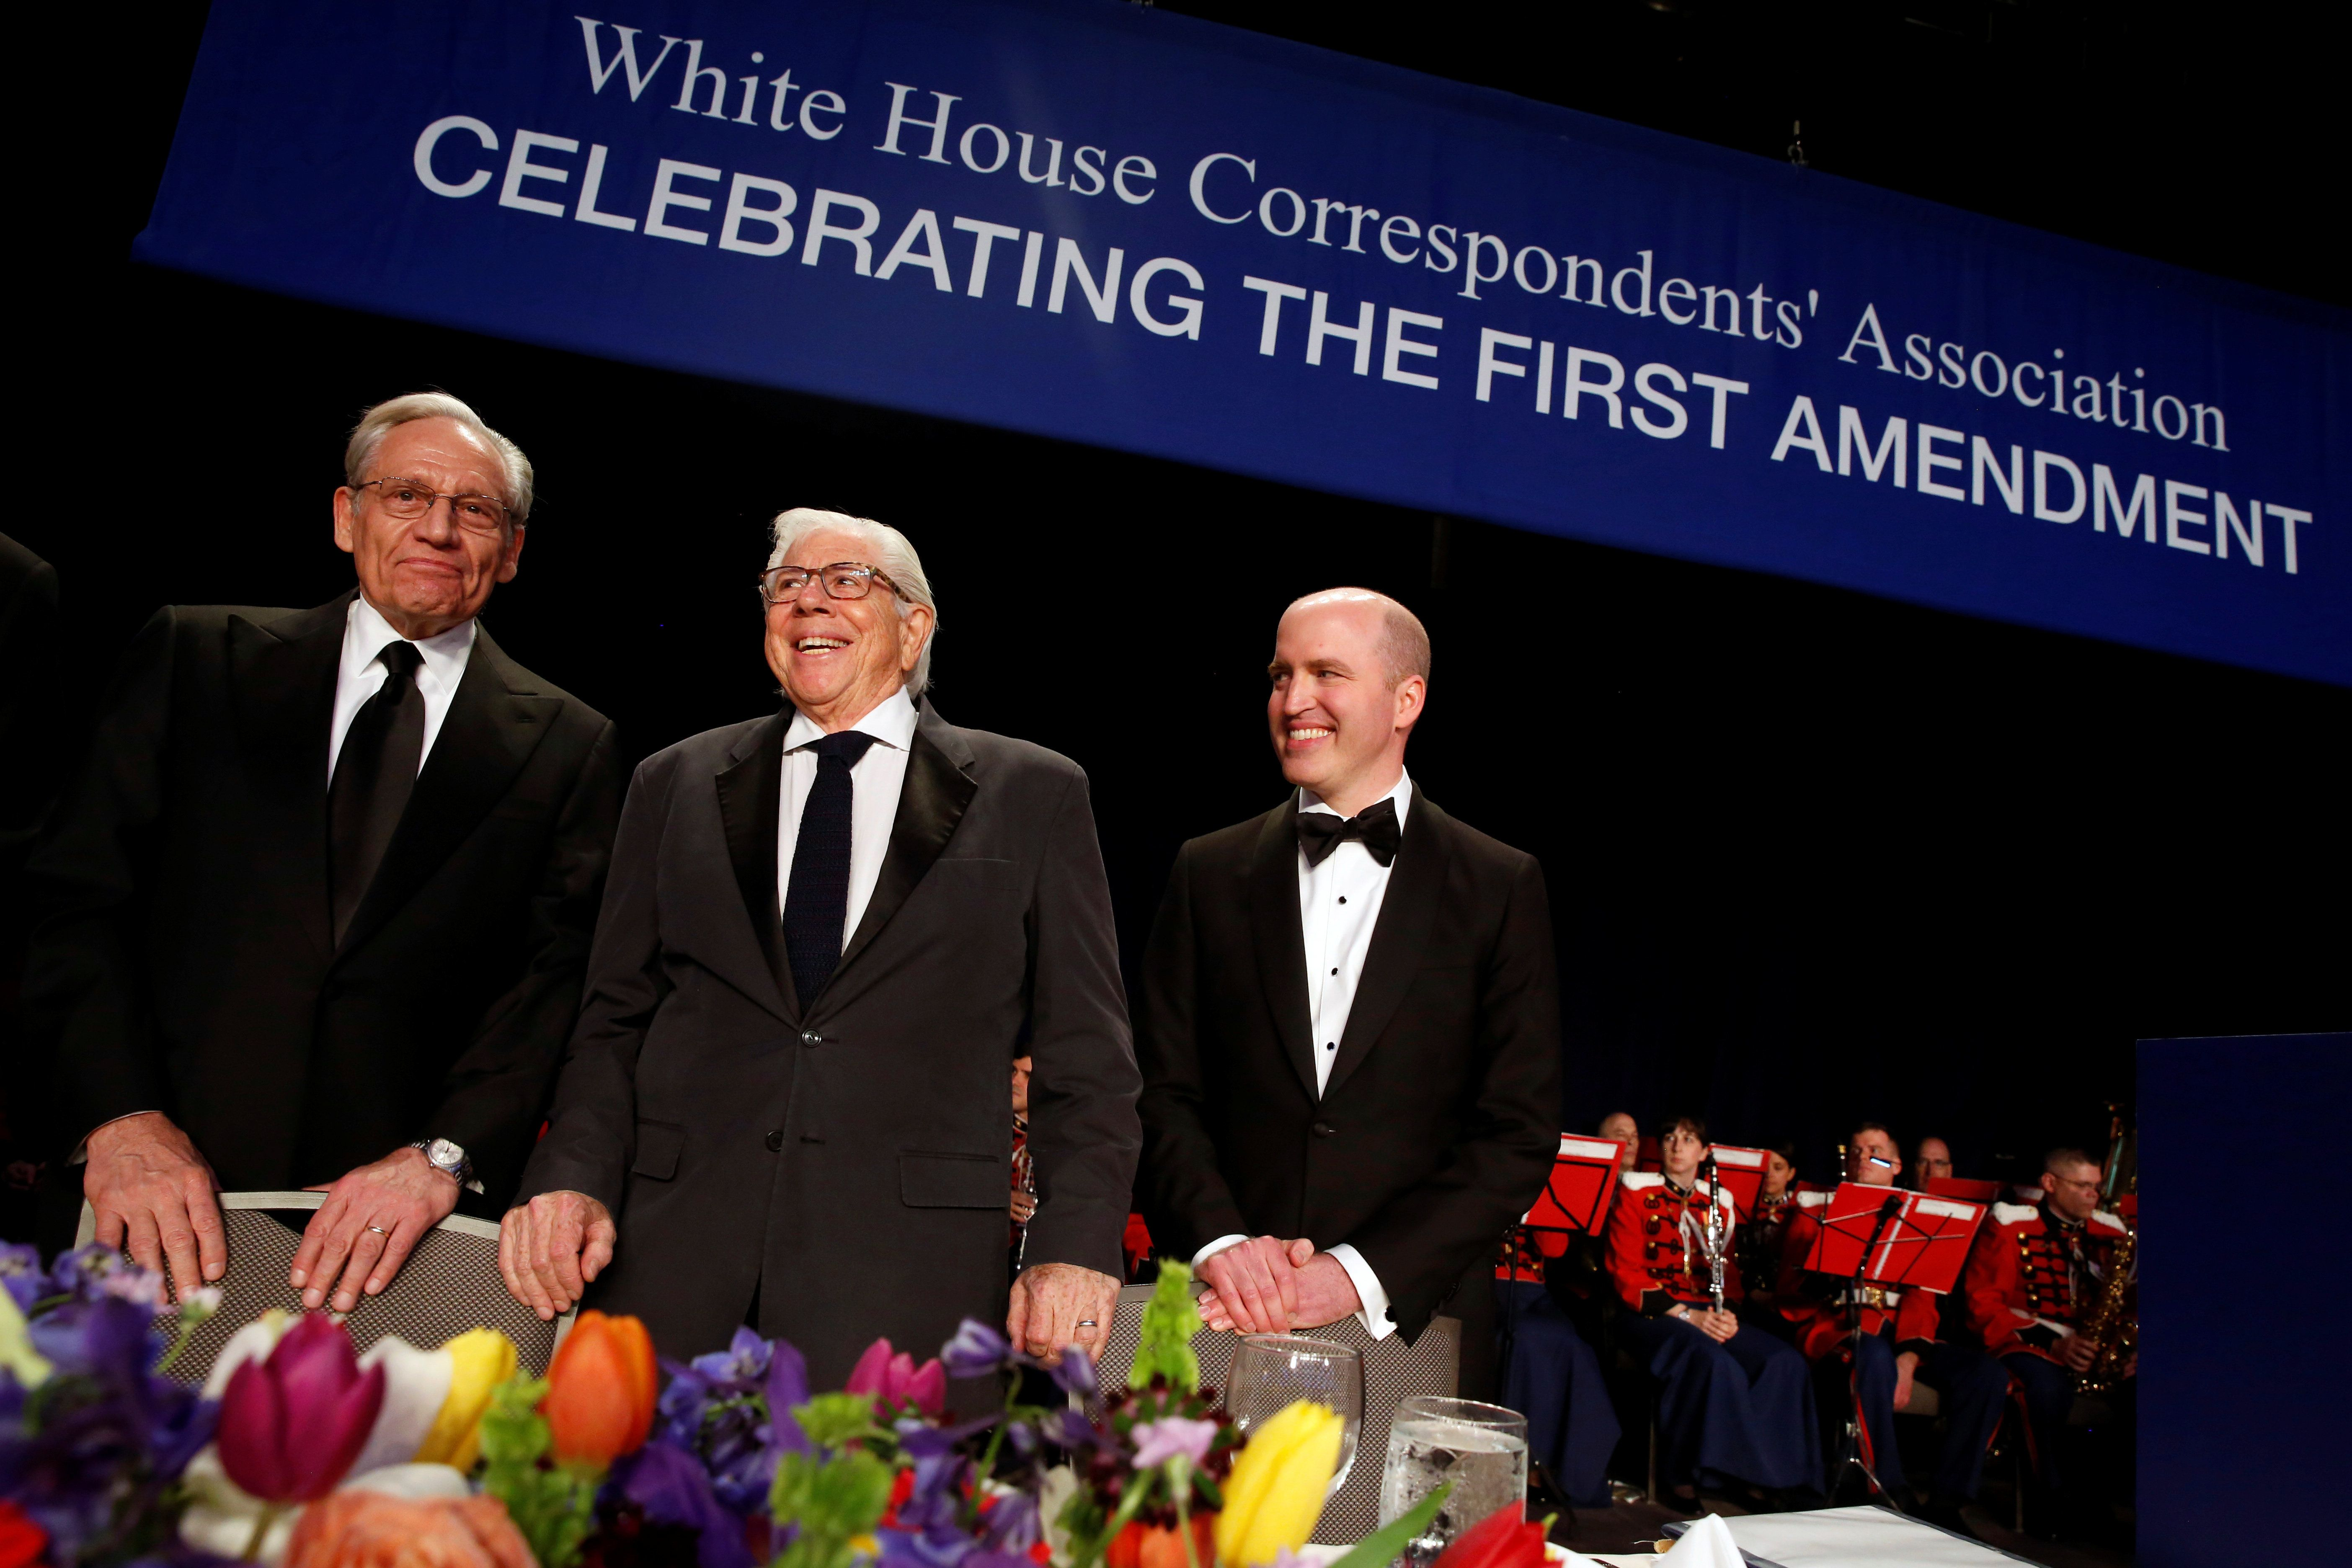 Famed Watergate reporters Bob Woodward and Carl Bernstein championed the role of the press on Saturday night, alongside White